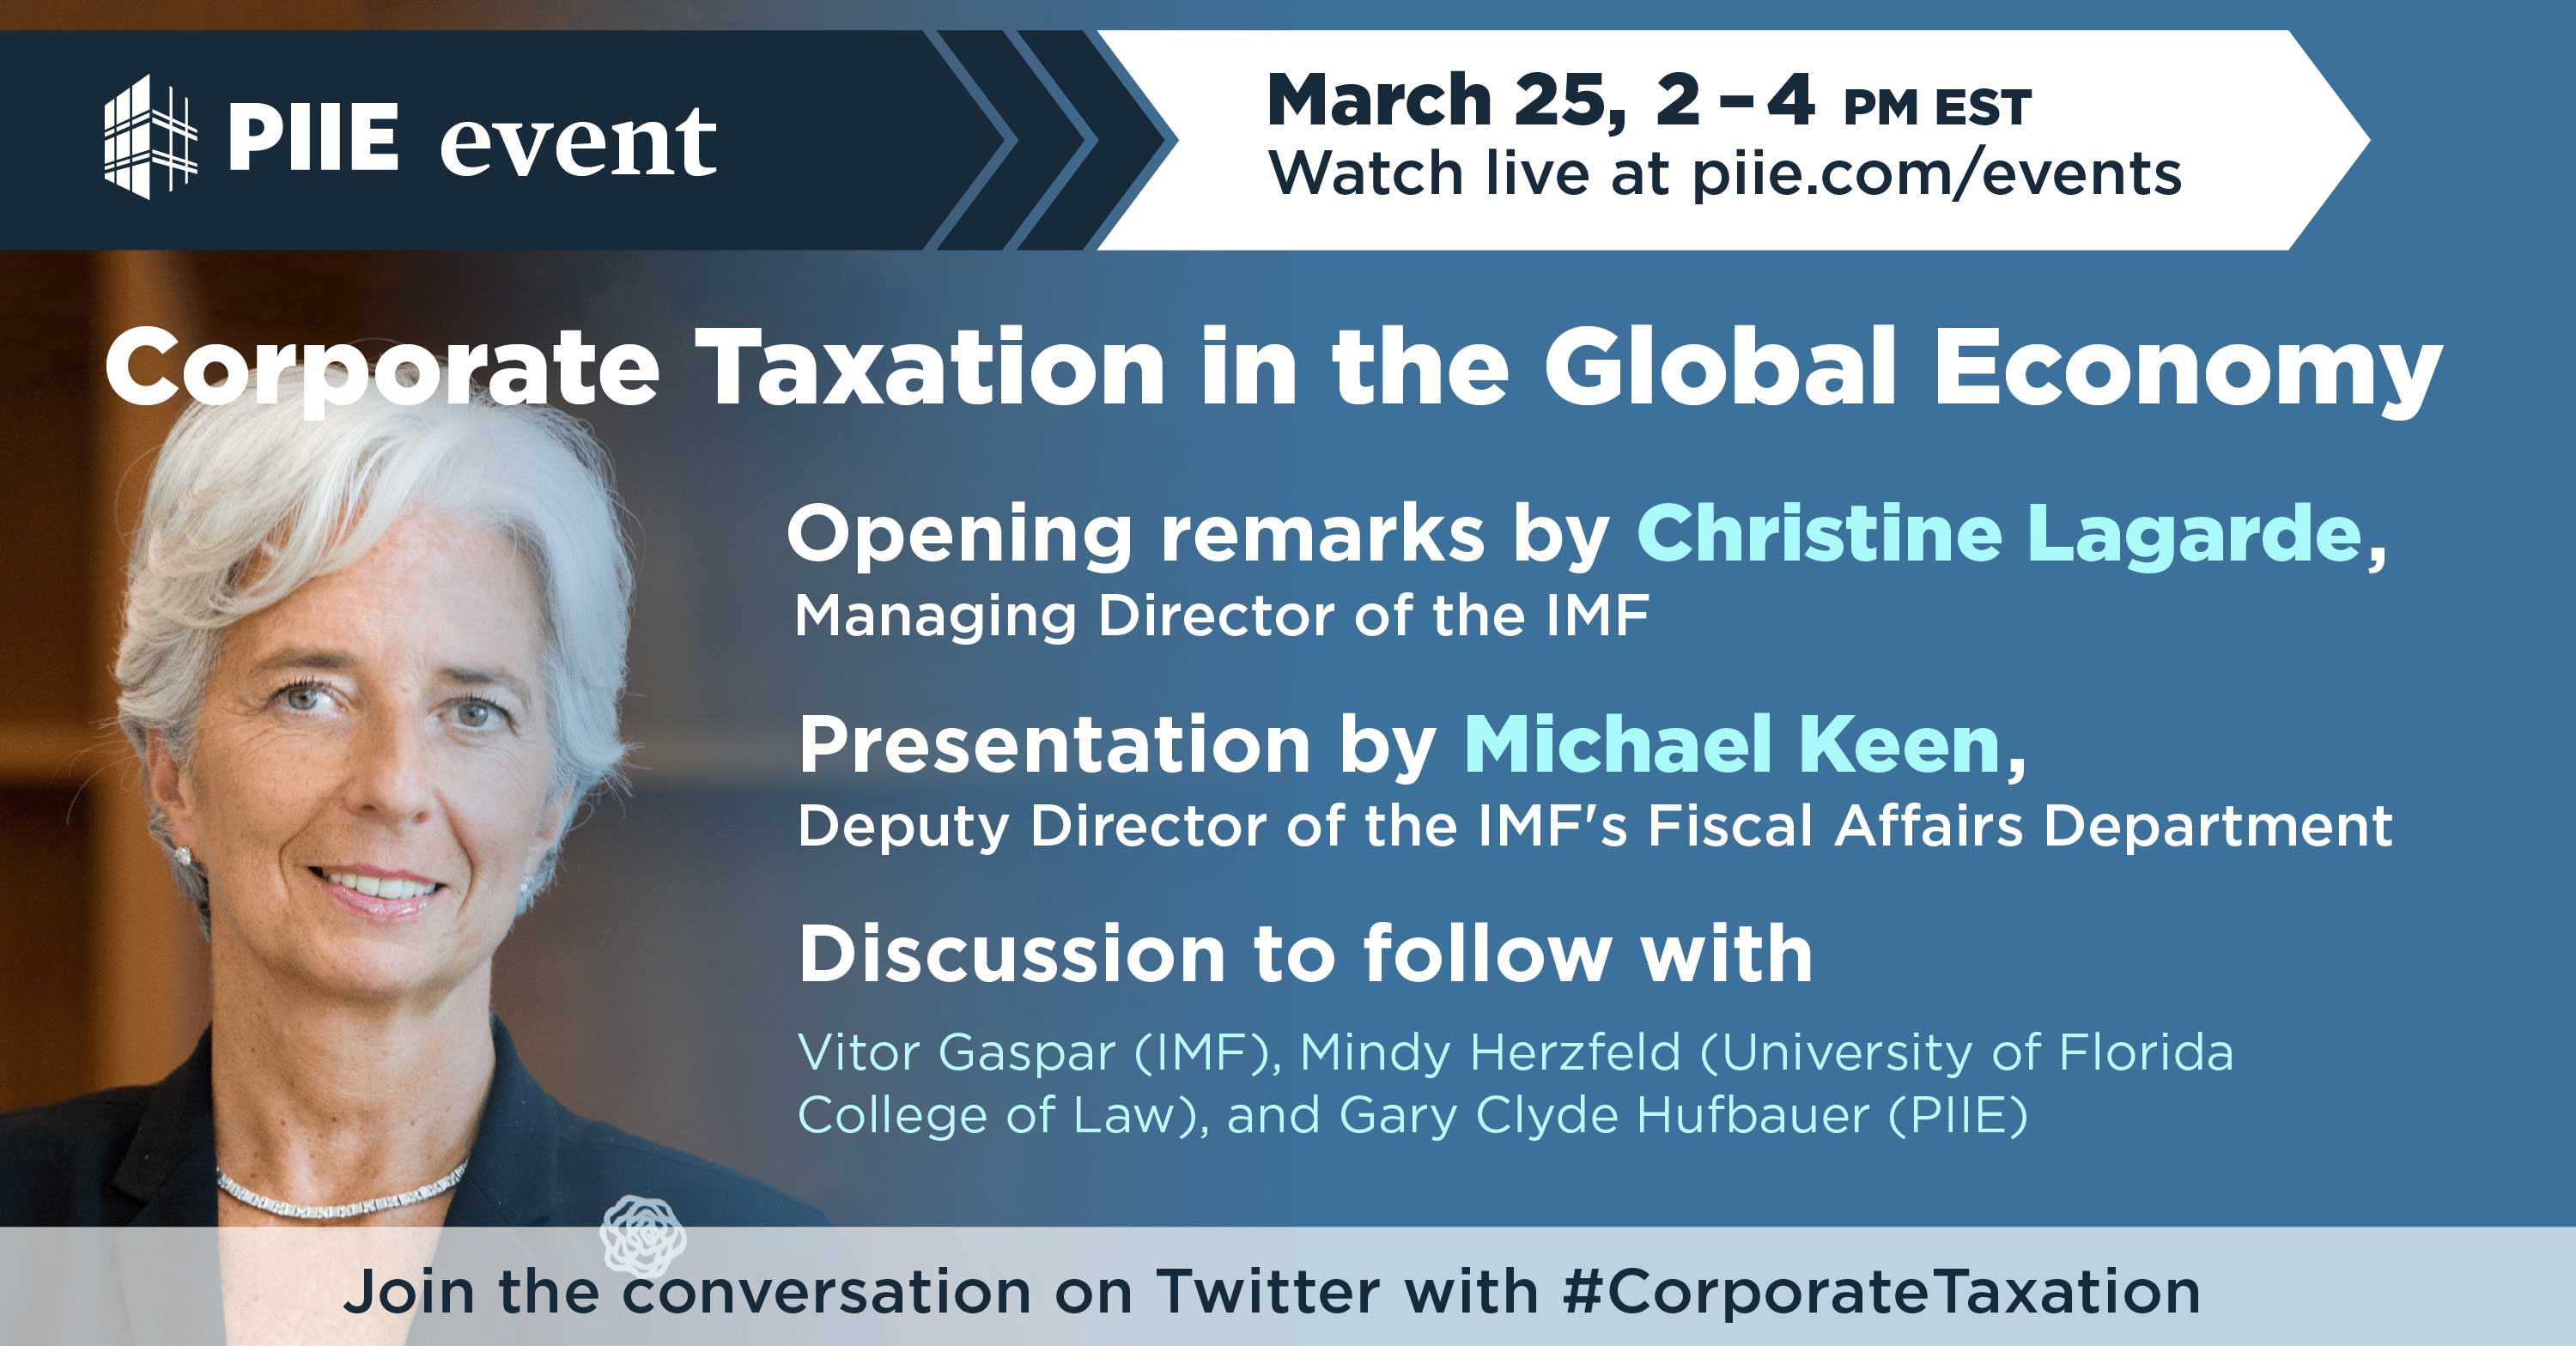 Corporate Taxation in the Global Economy   Event   PIIE